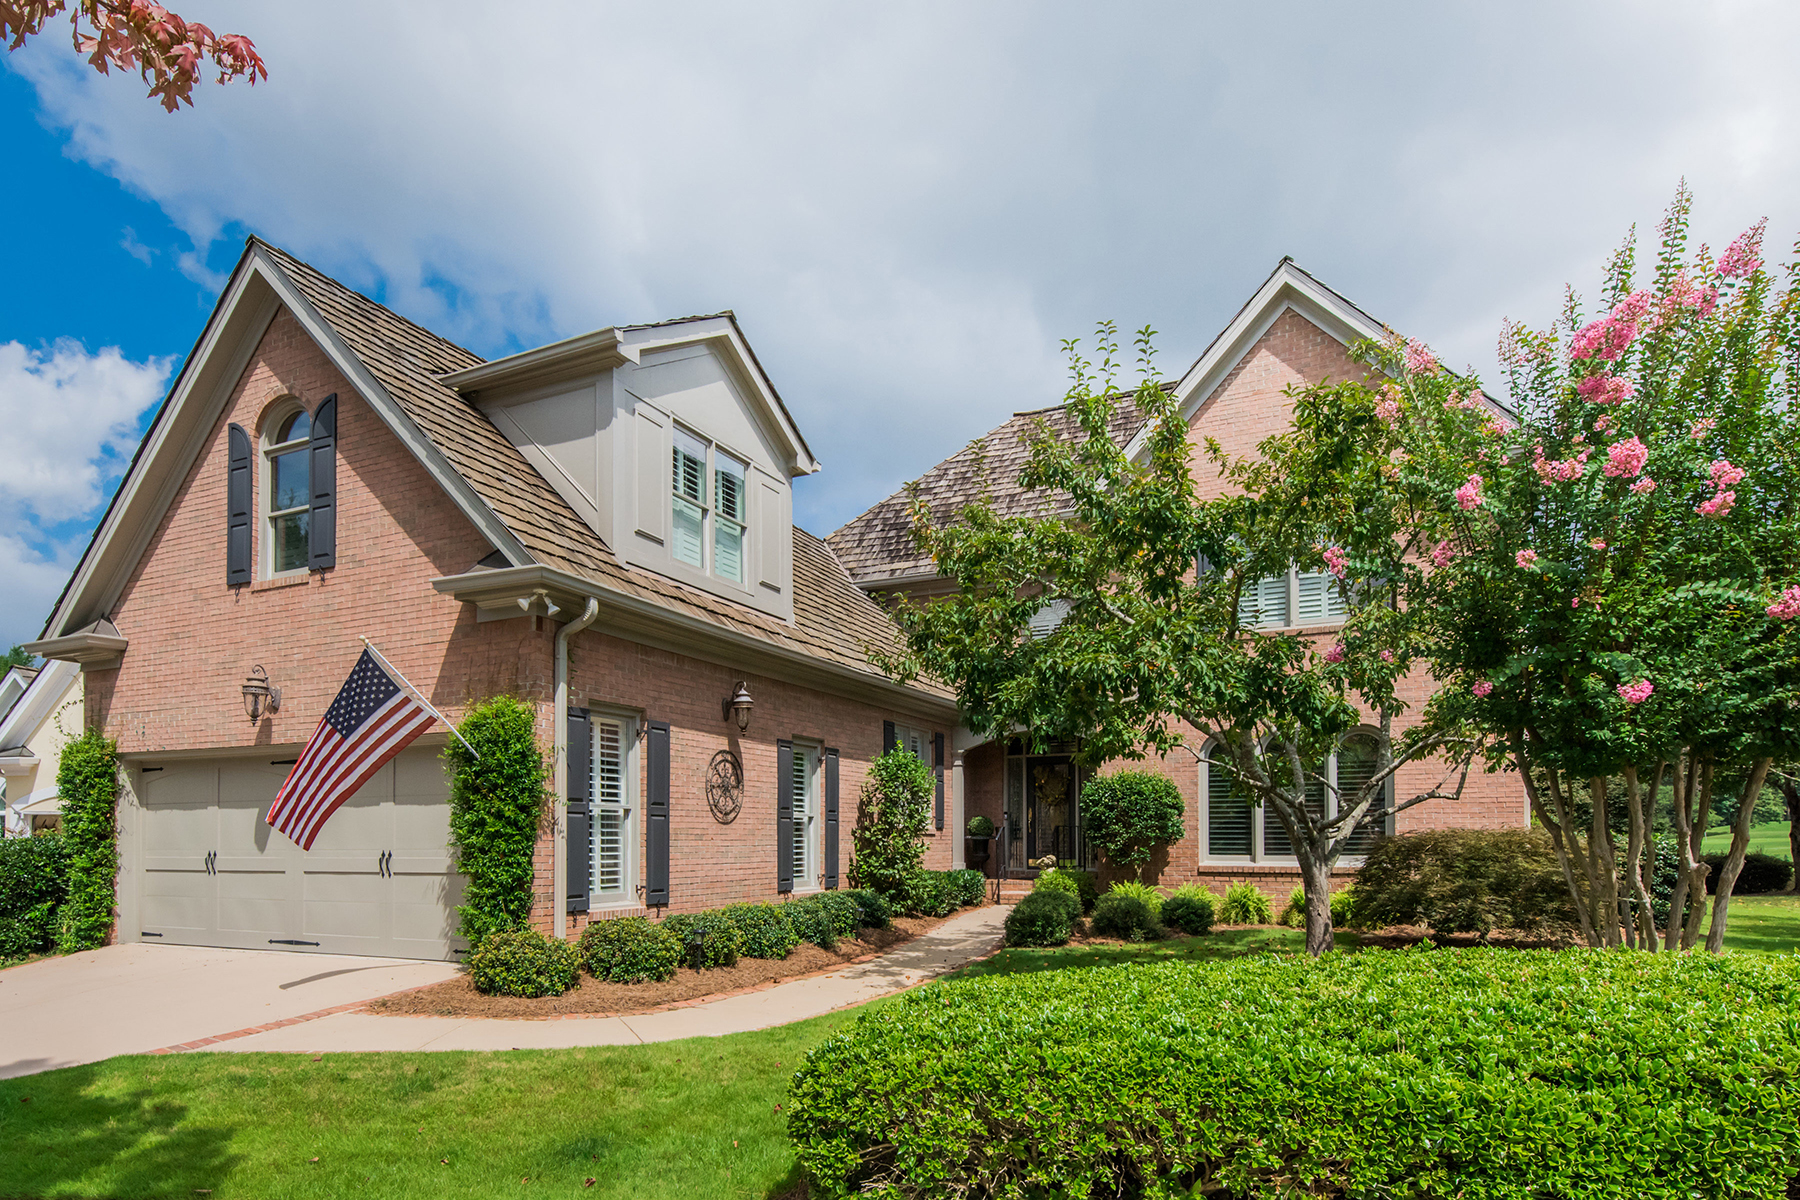 Single Family Home for Sale at Brick Jewel On The Water 3300 Brookside Drive Roswell, Georgia 30076 United States